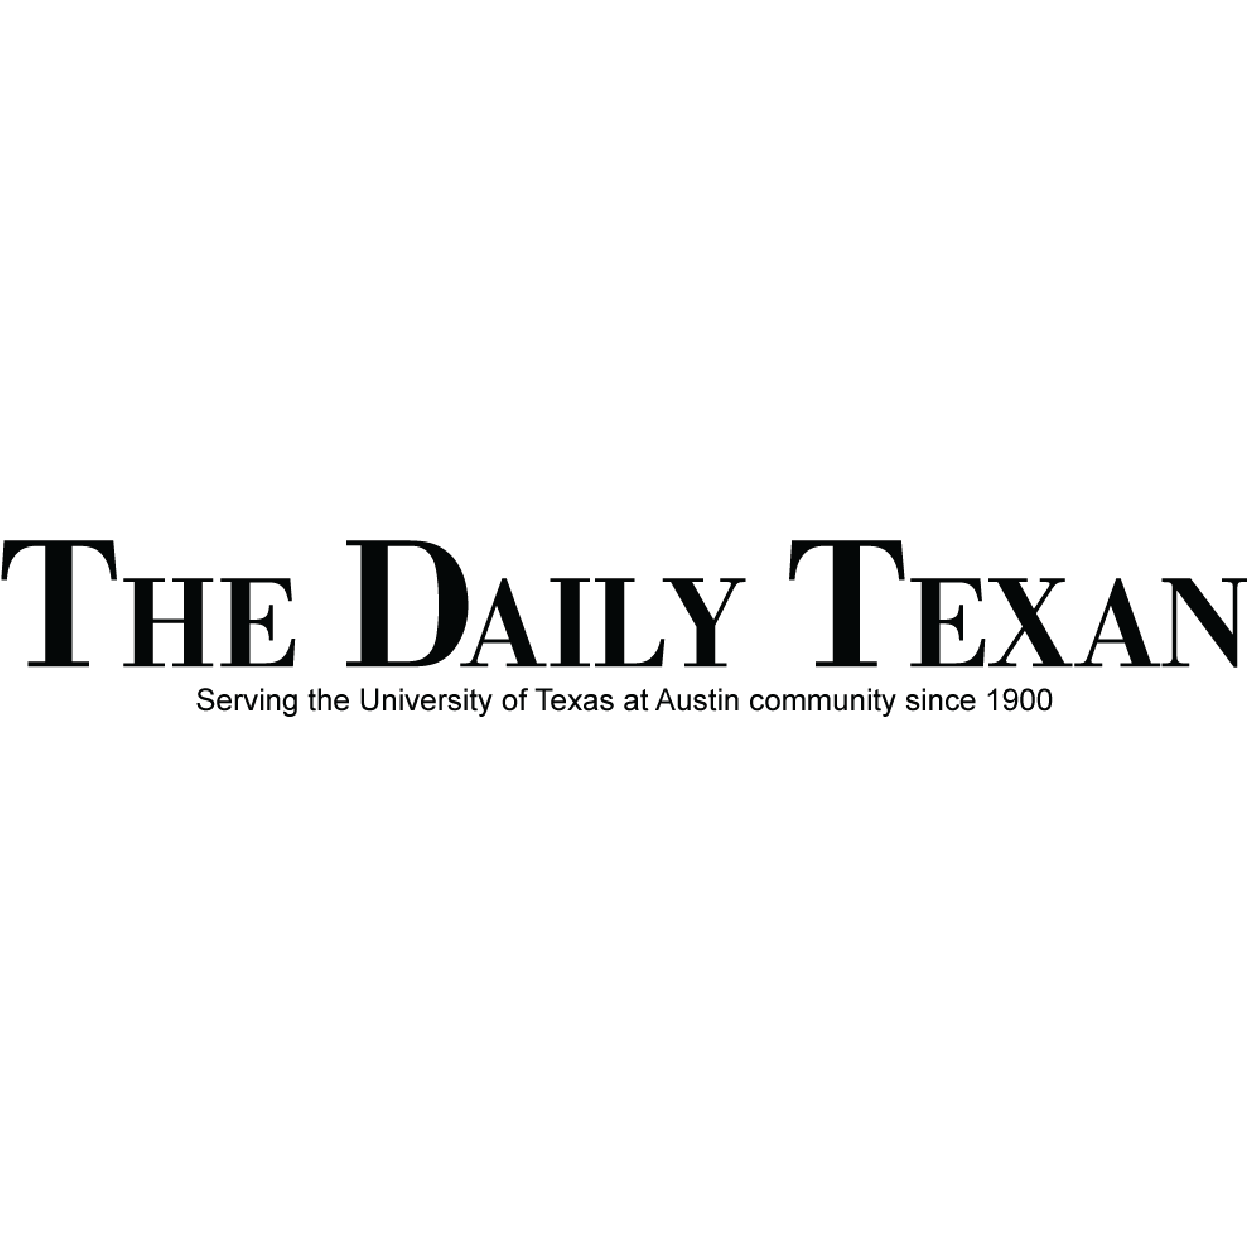 The_Daily_Texan-01.png